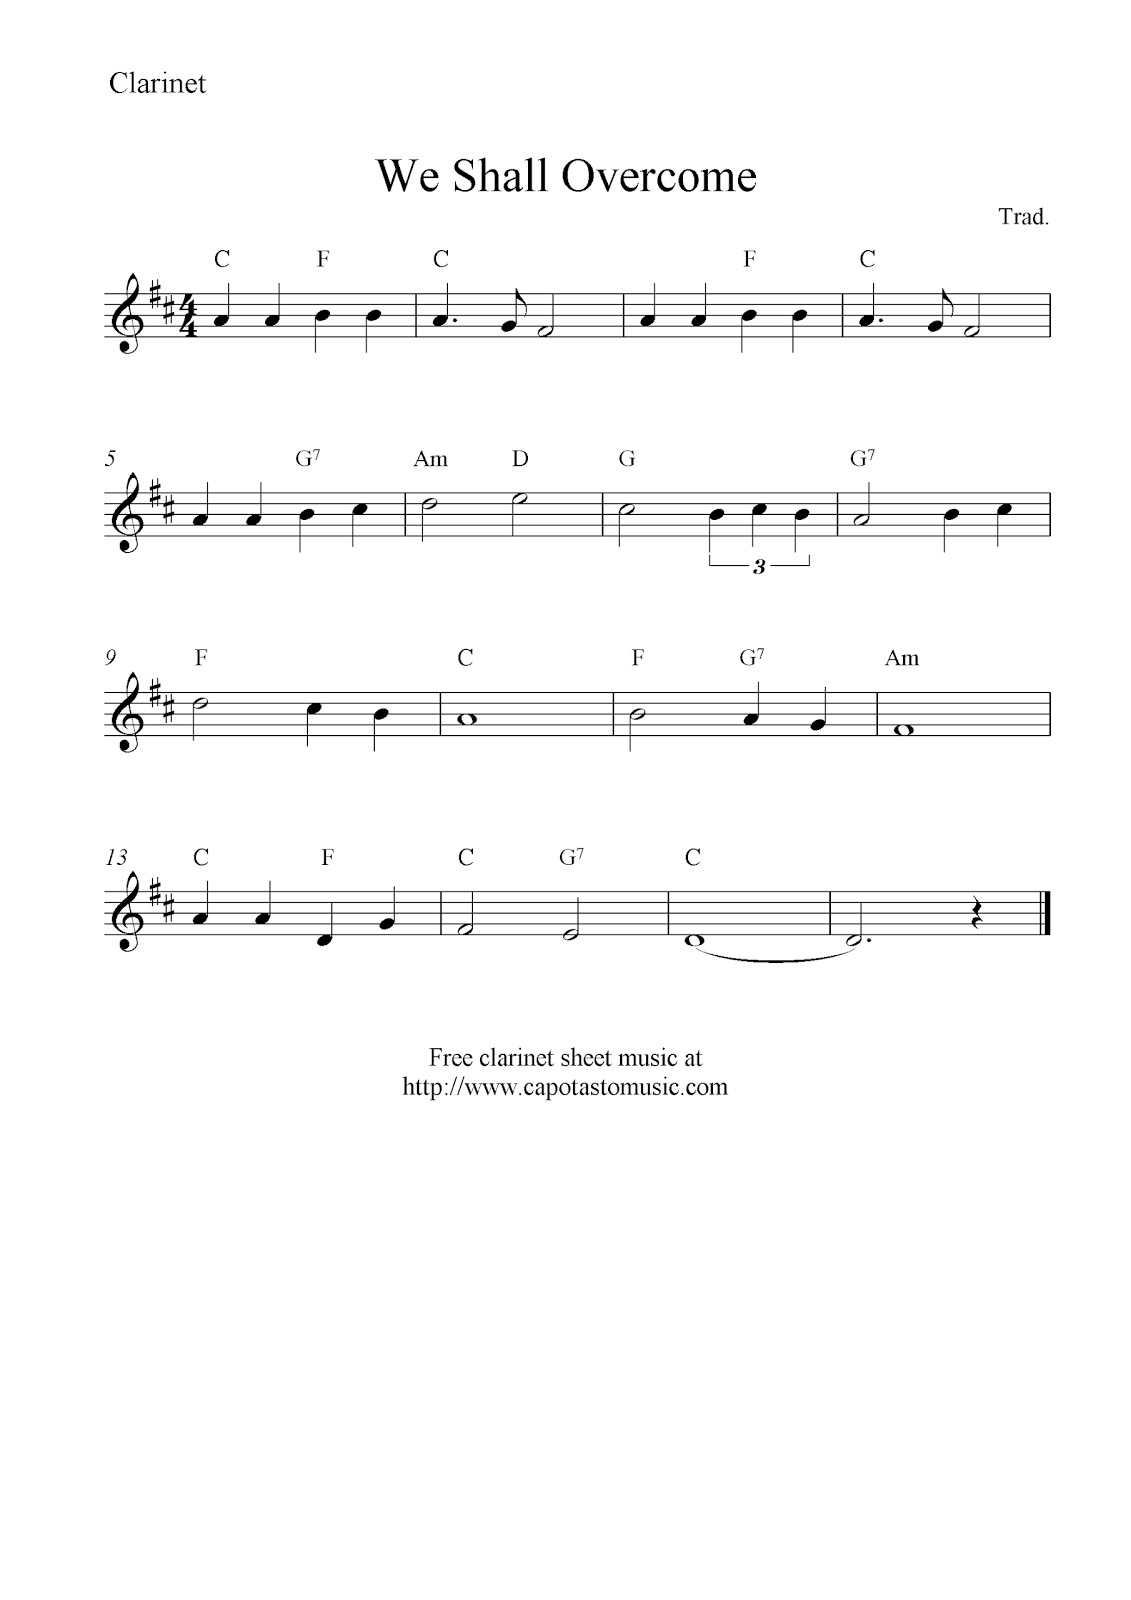 photograph about Free Printable Clarinet Sheet Music referred to as We Shall Conquer, cost-free clarinet sheet tunes notes